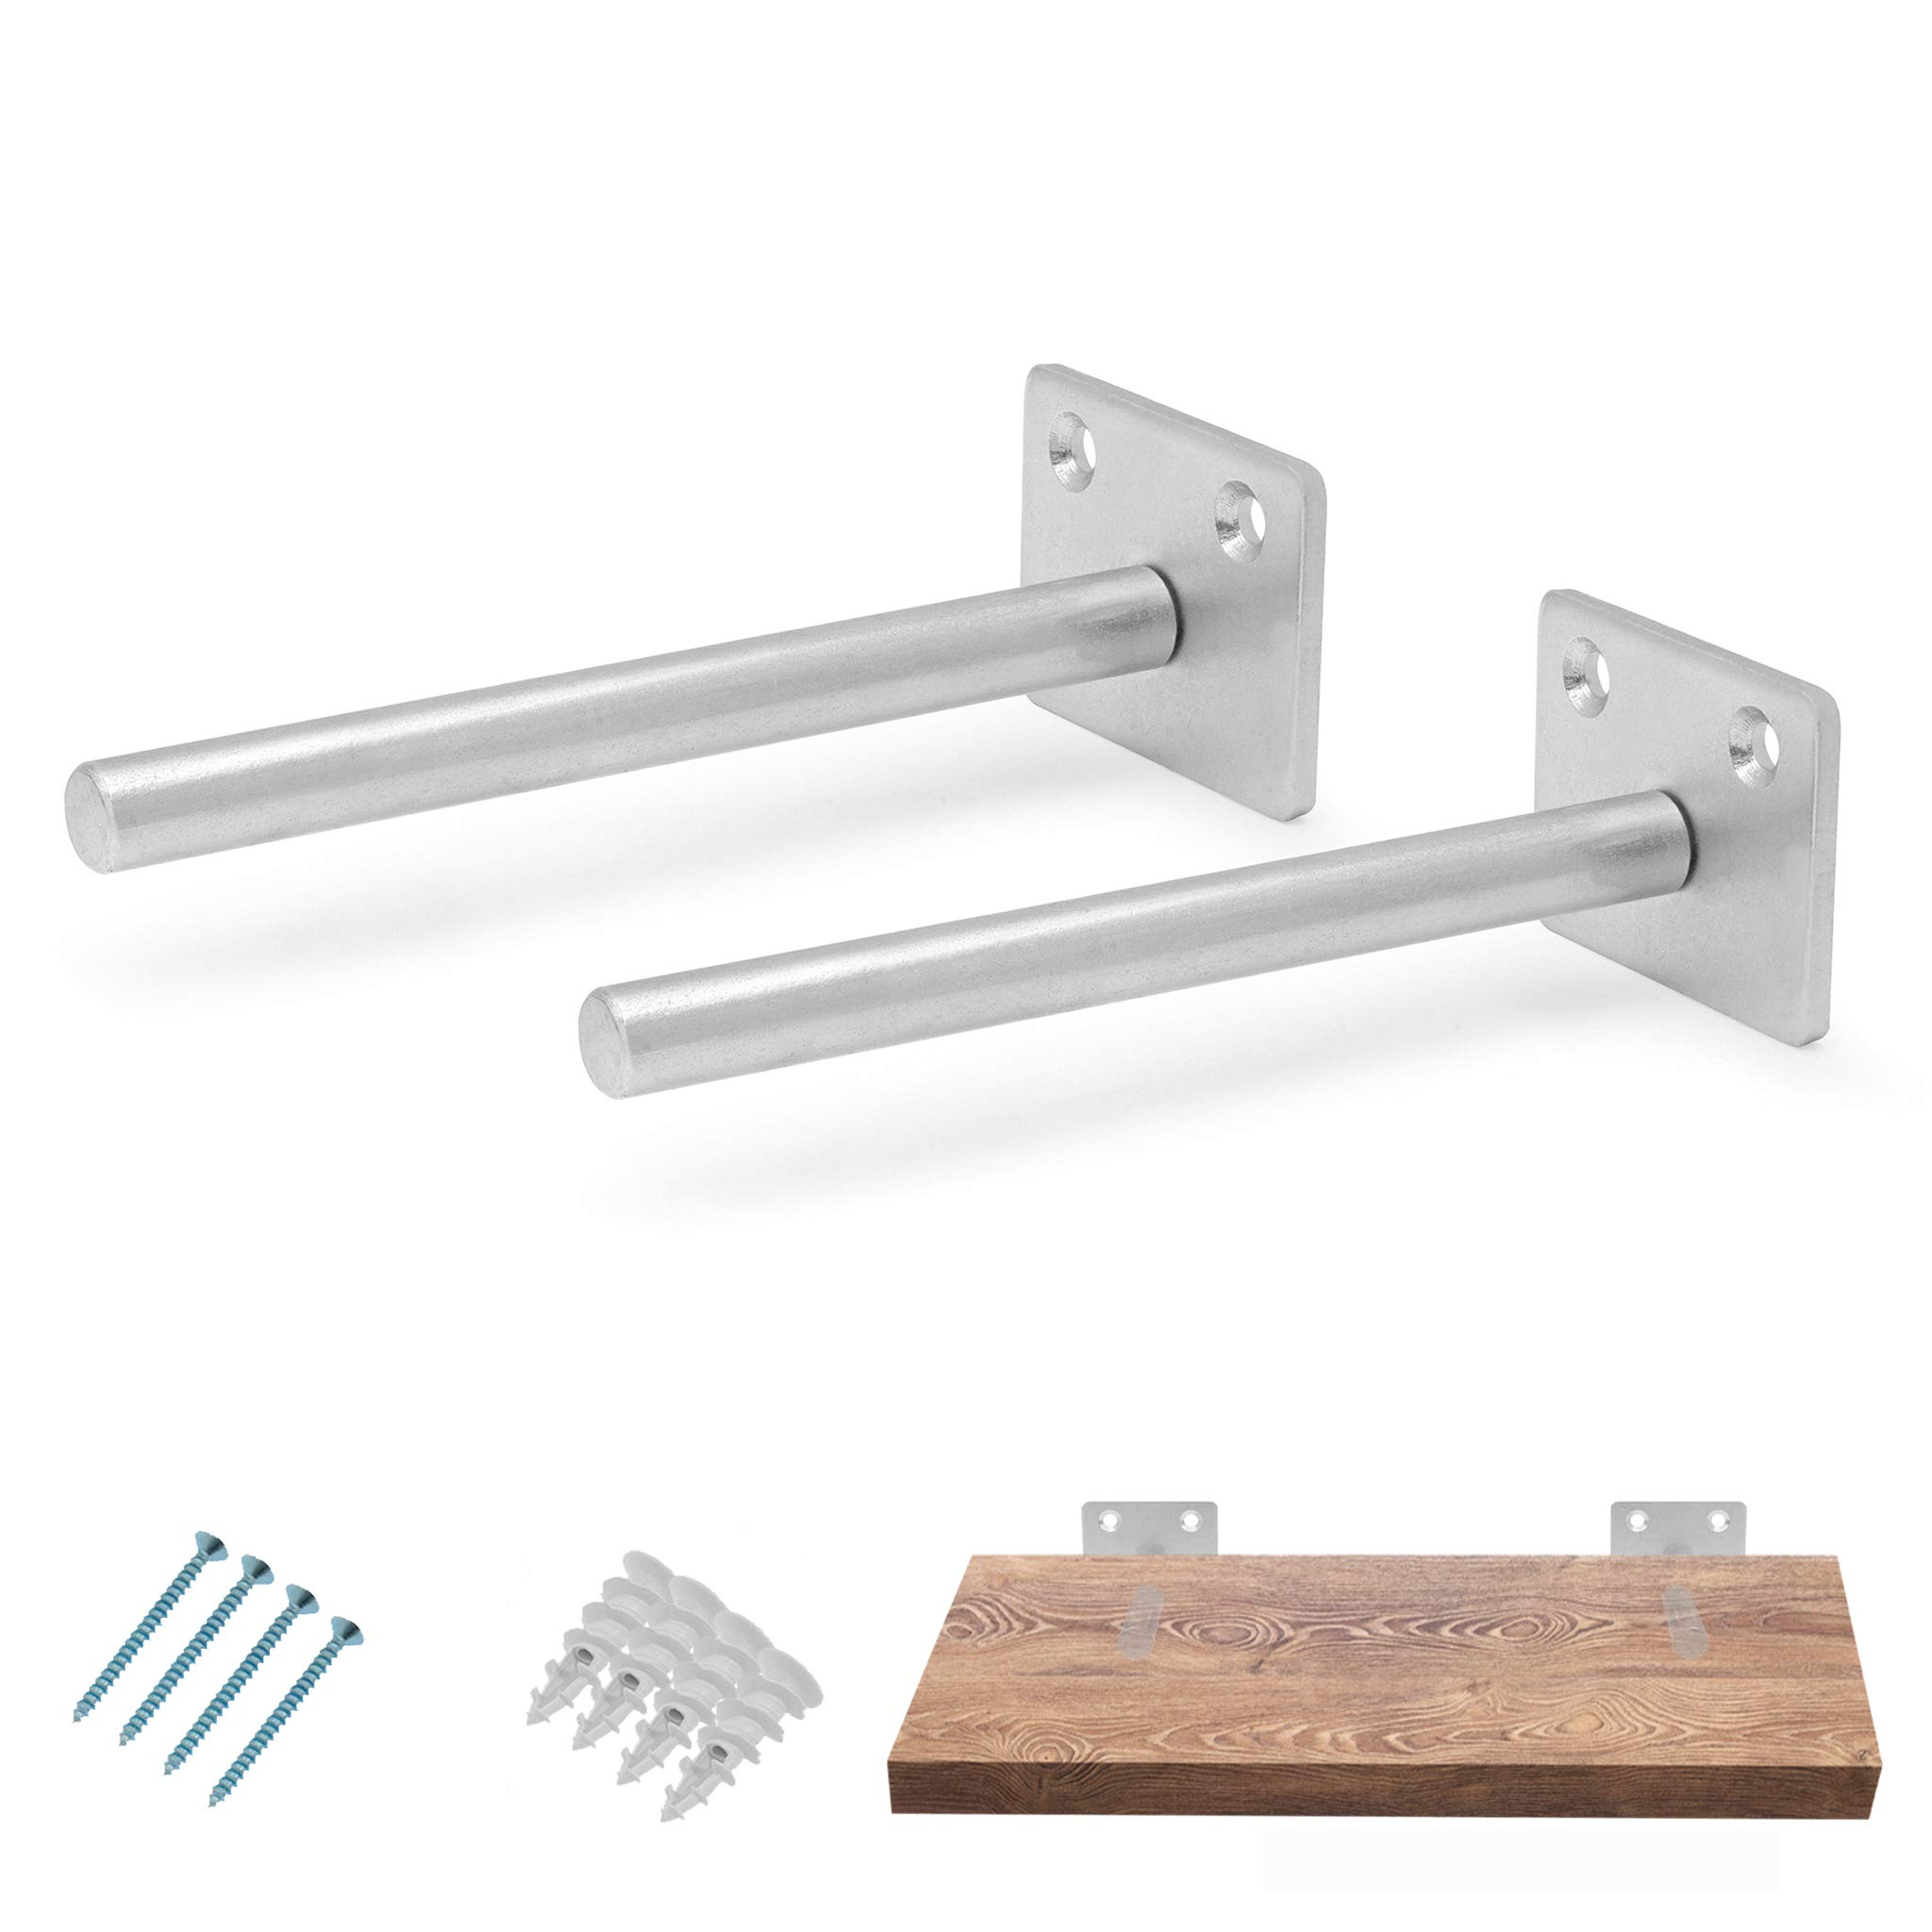 Solid Steel Floating Shelf Bracket (2 pcs Galvanized) - Blind Shelf Supports - Hidden Brackets for Floating Wood Shelves - Blind Shelf Support – Screws and Wall Plugs Included (Shelf NOT Included)